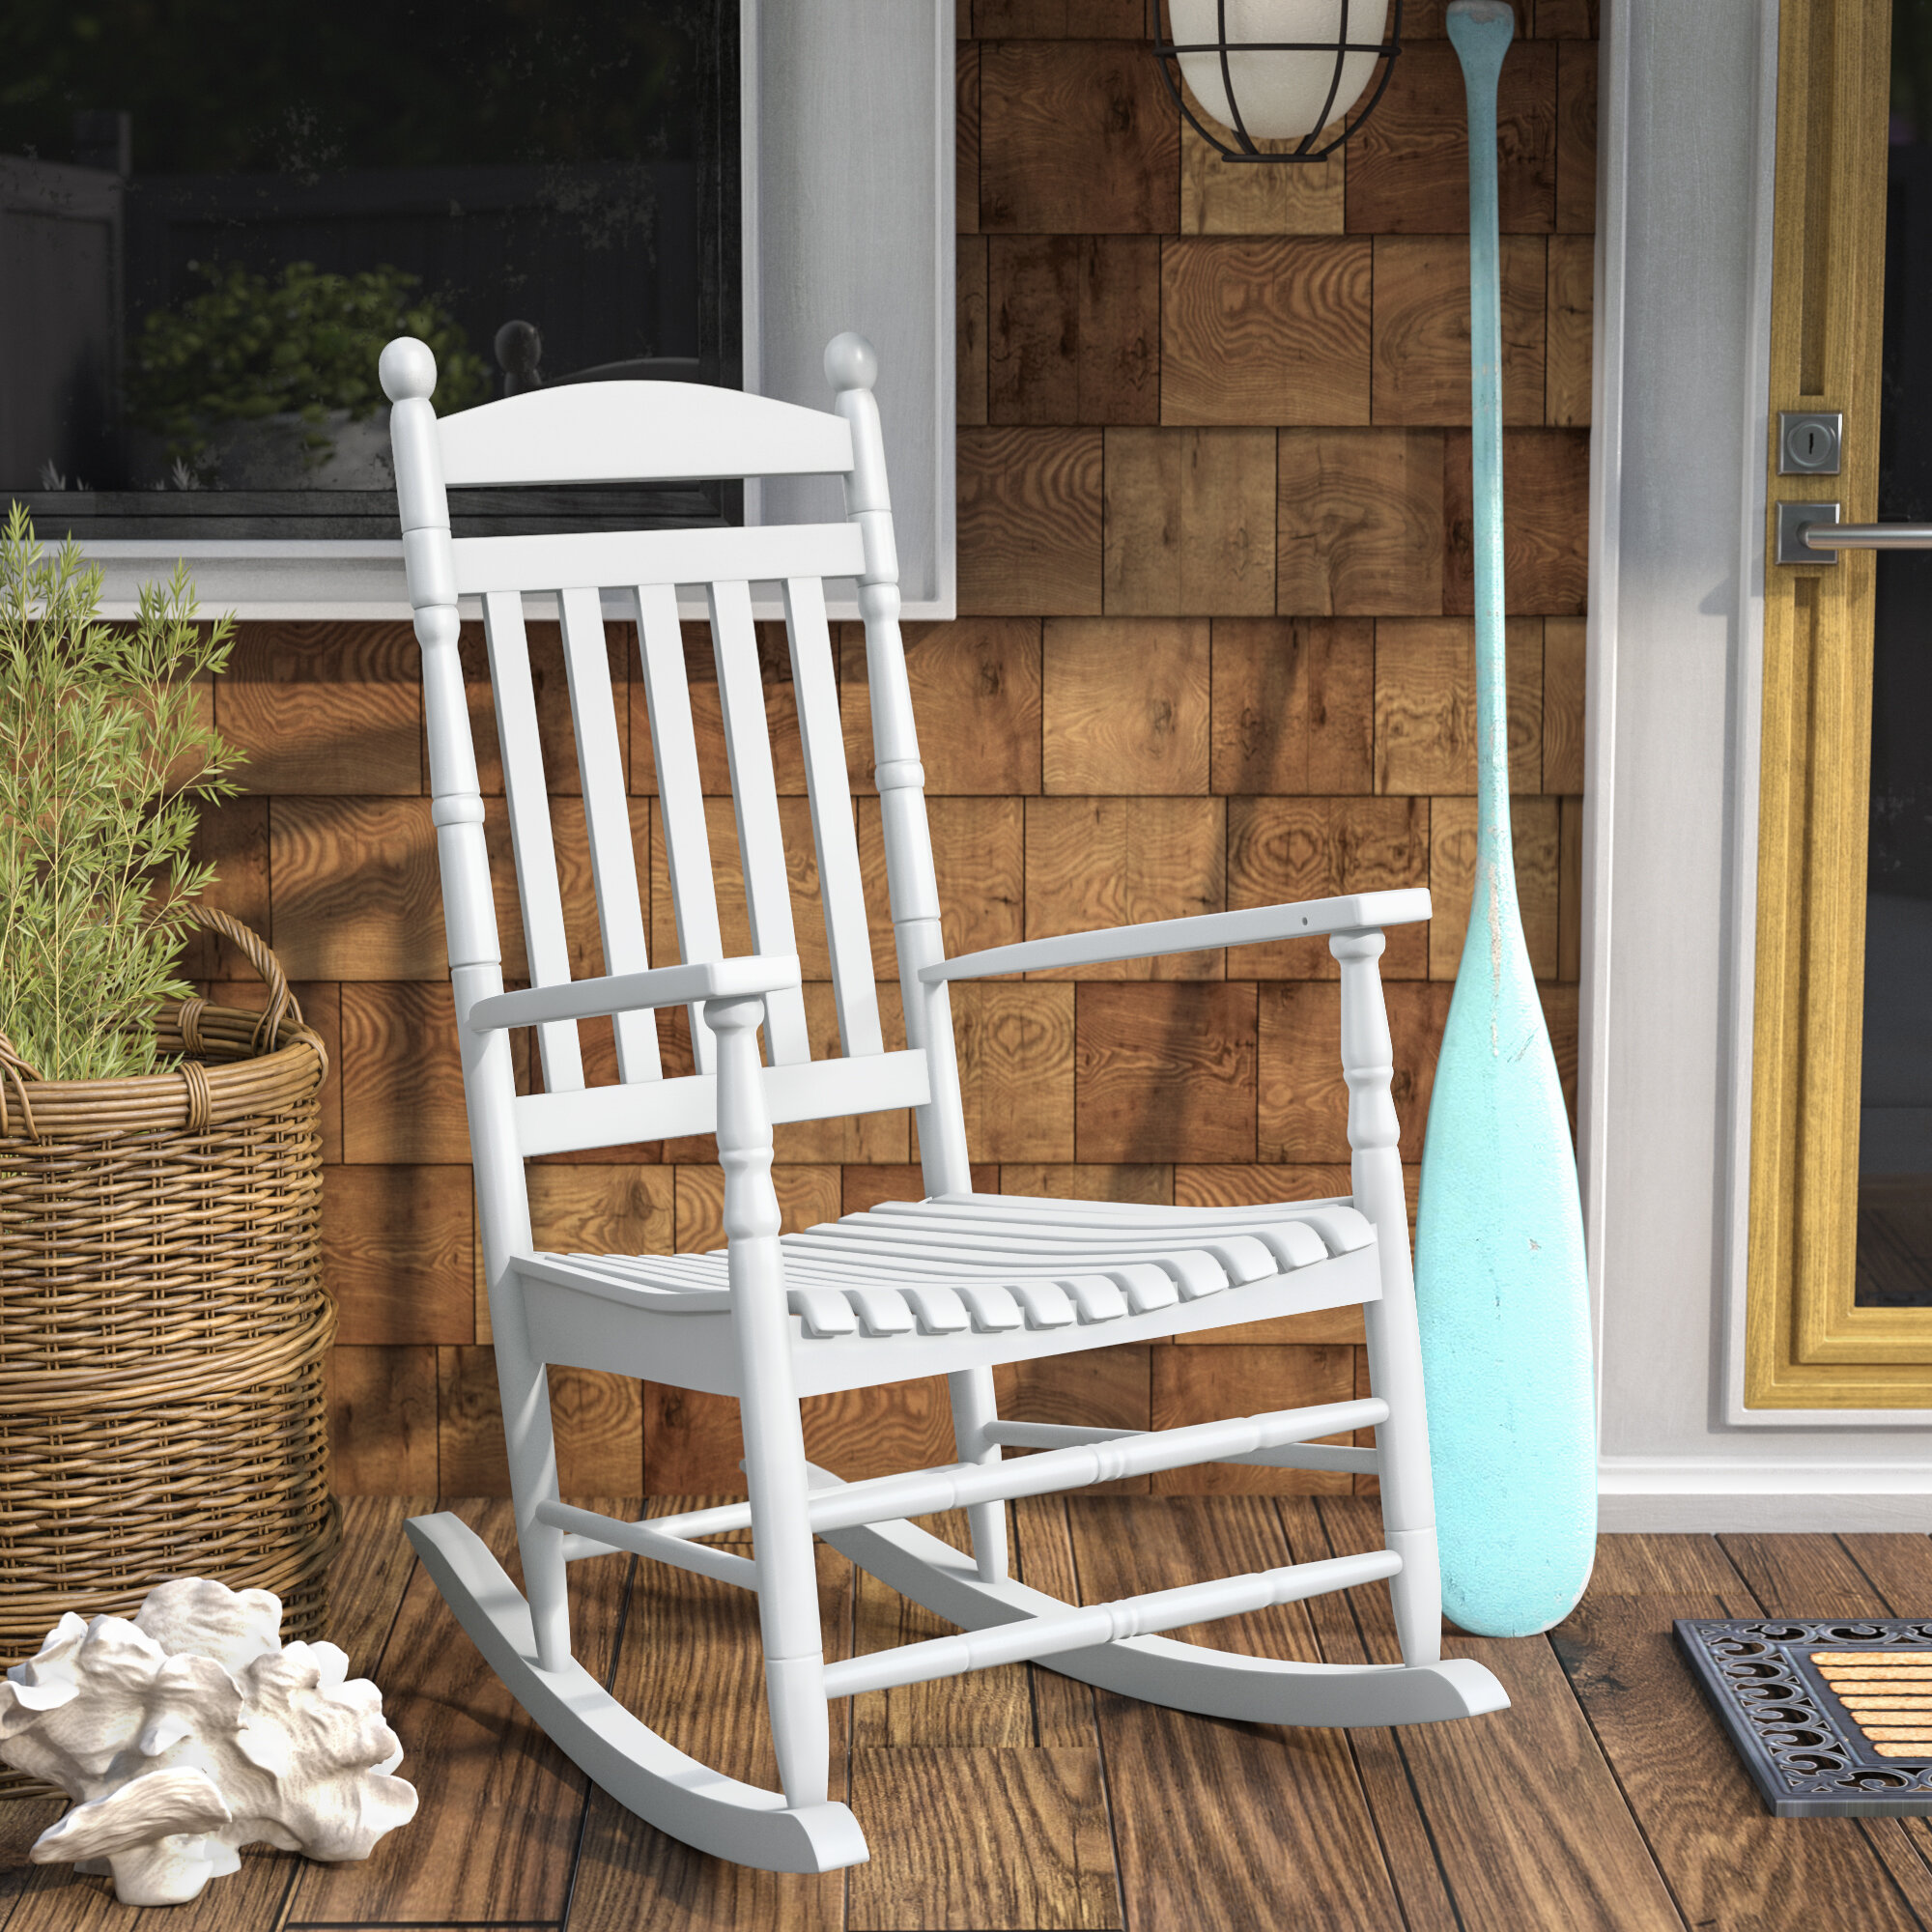 Outstanding Landaff Island Porch Rocker Chair Ibusinesslaw Wood Chair Design Ideas Ibusinesslaworg